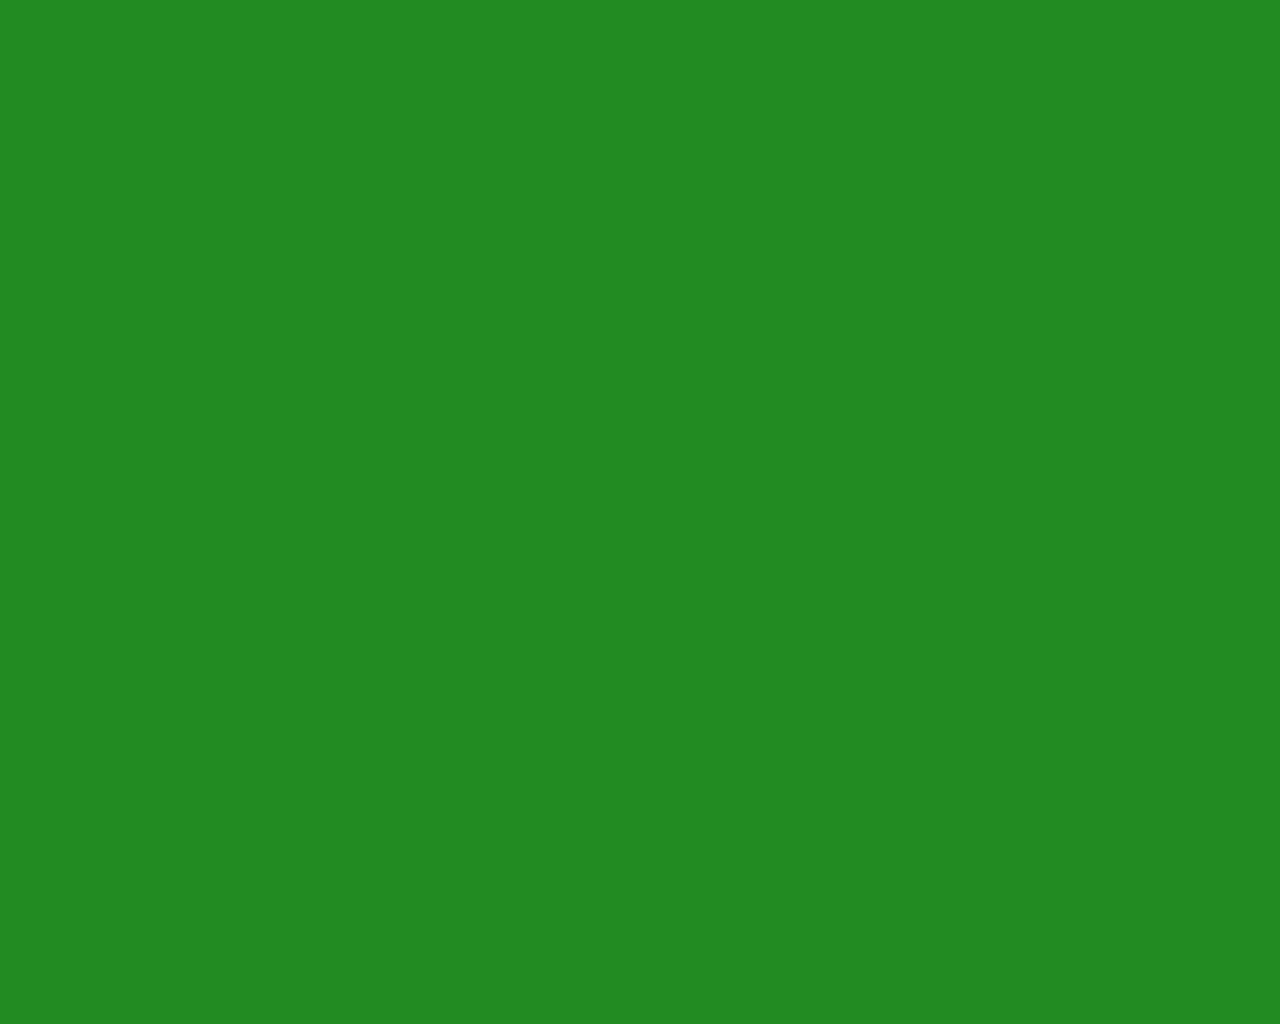 1280x1024 Forest Green For Web Solid Color Background